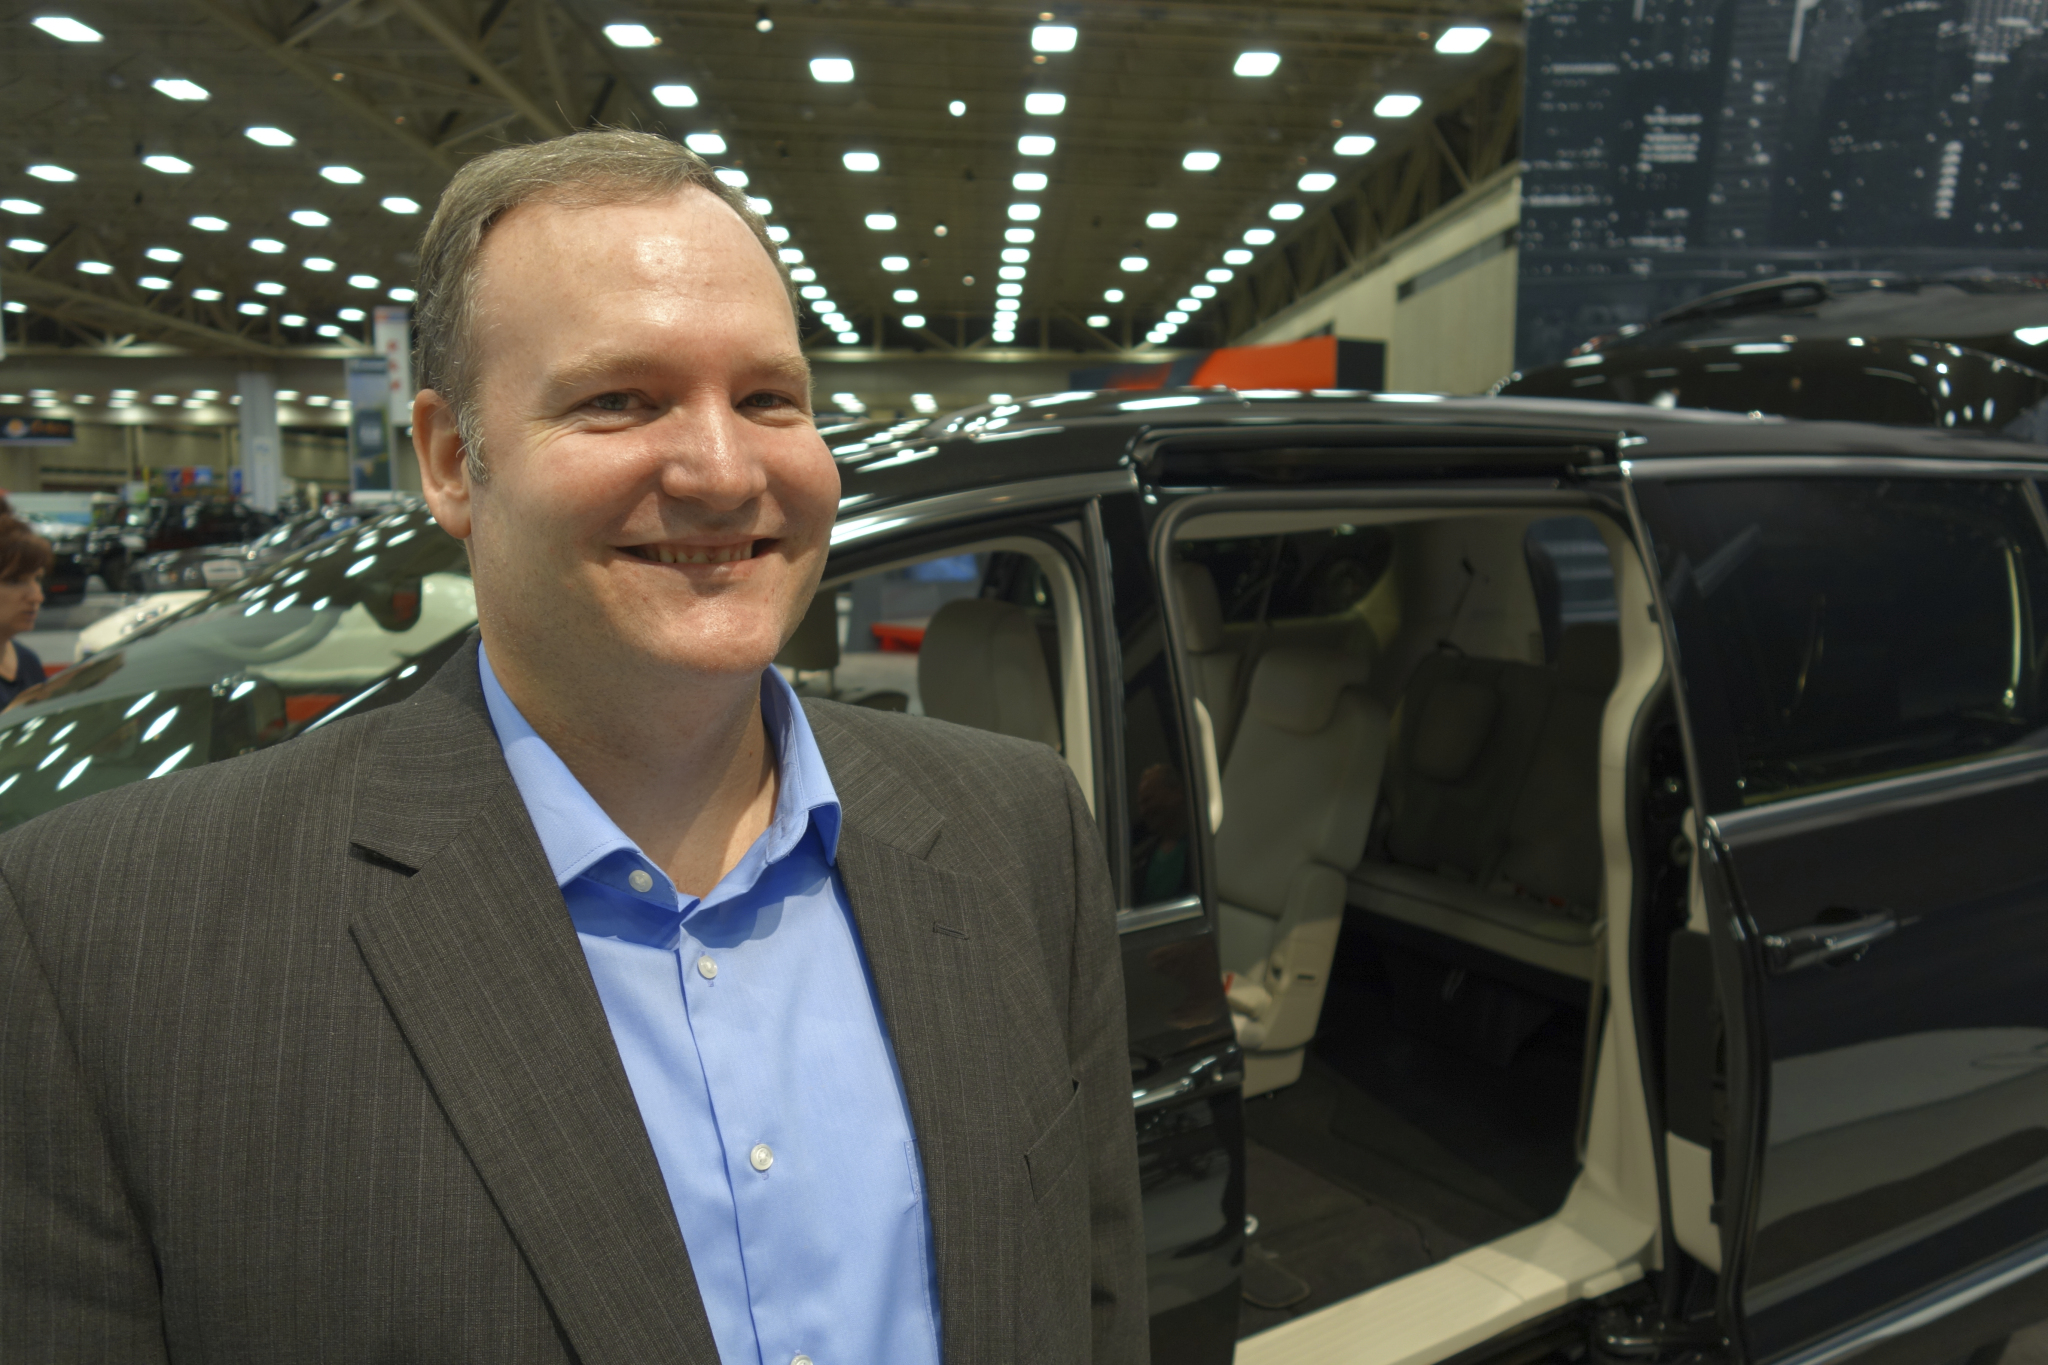 Chrysler Brand Product Manager Patrick Keitz at the DFW Auto Show Photo by Brad Koehn